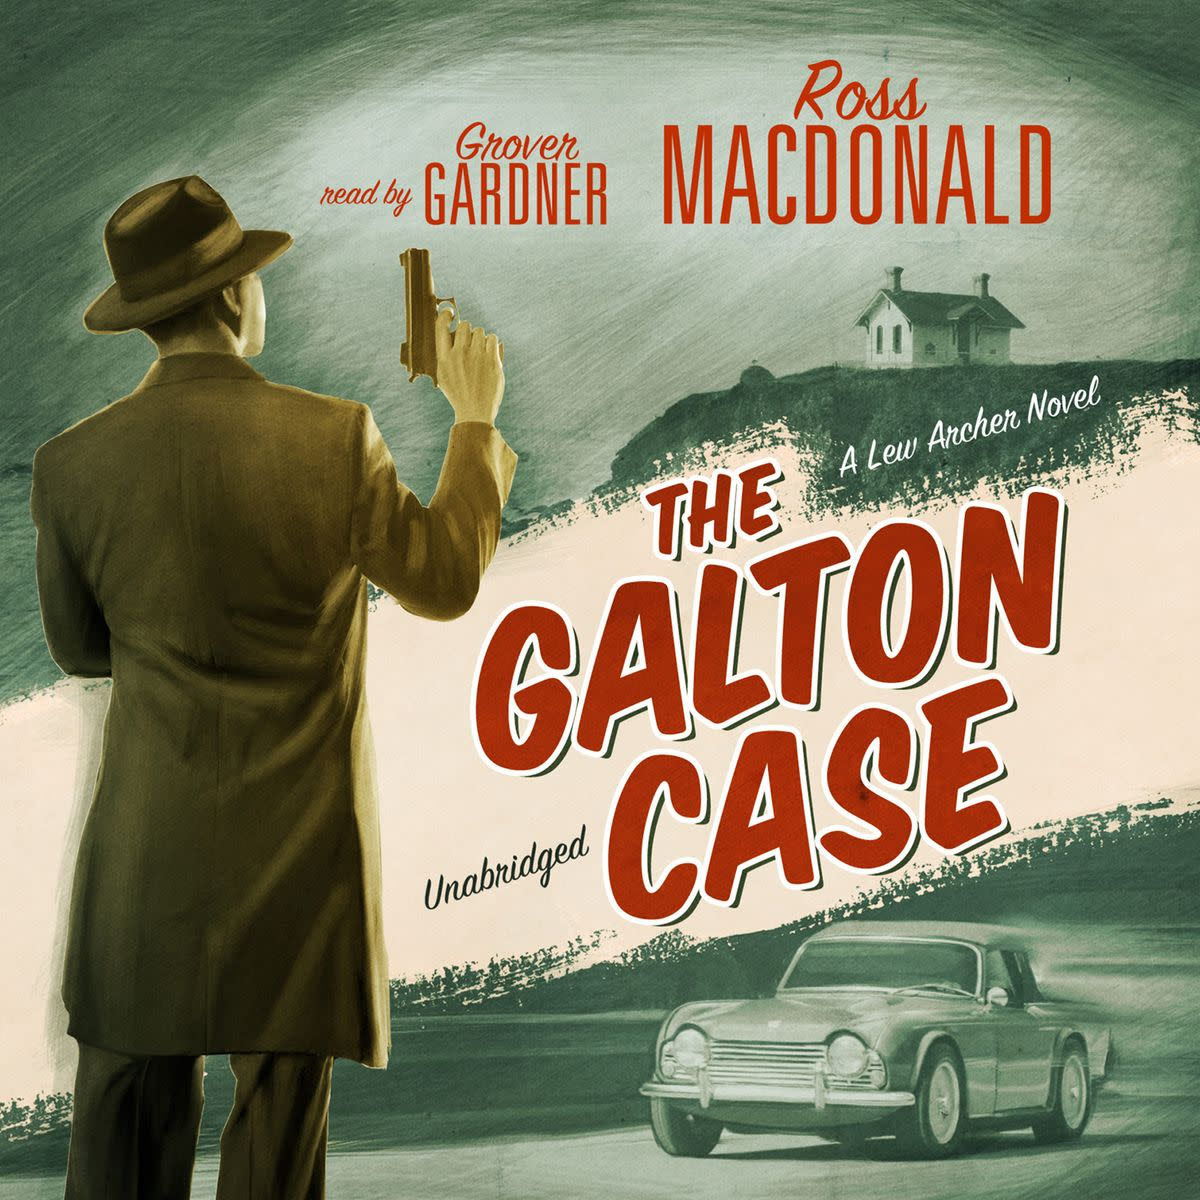 Cover to the audiobook version of The Galton Case